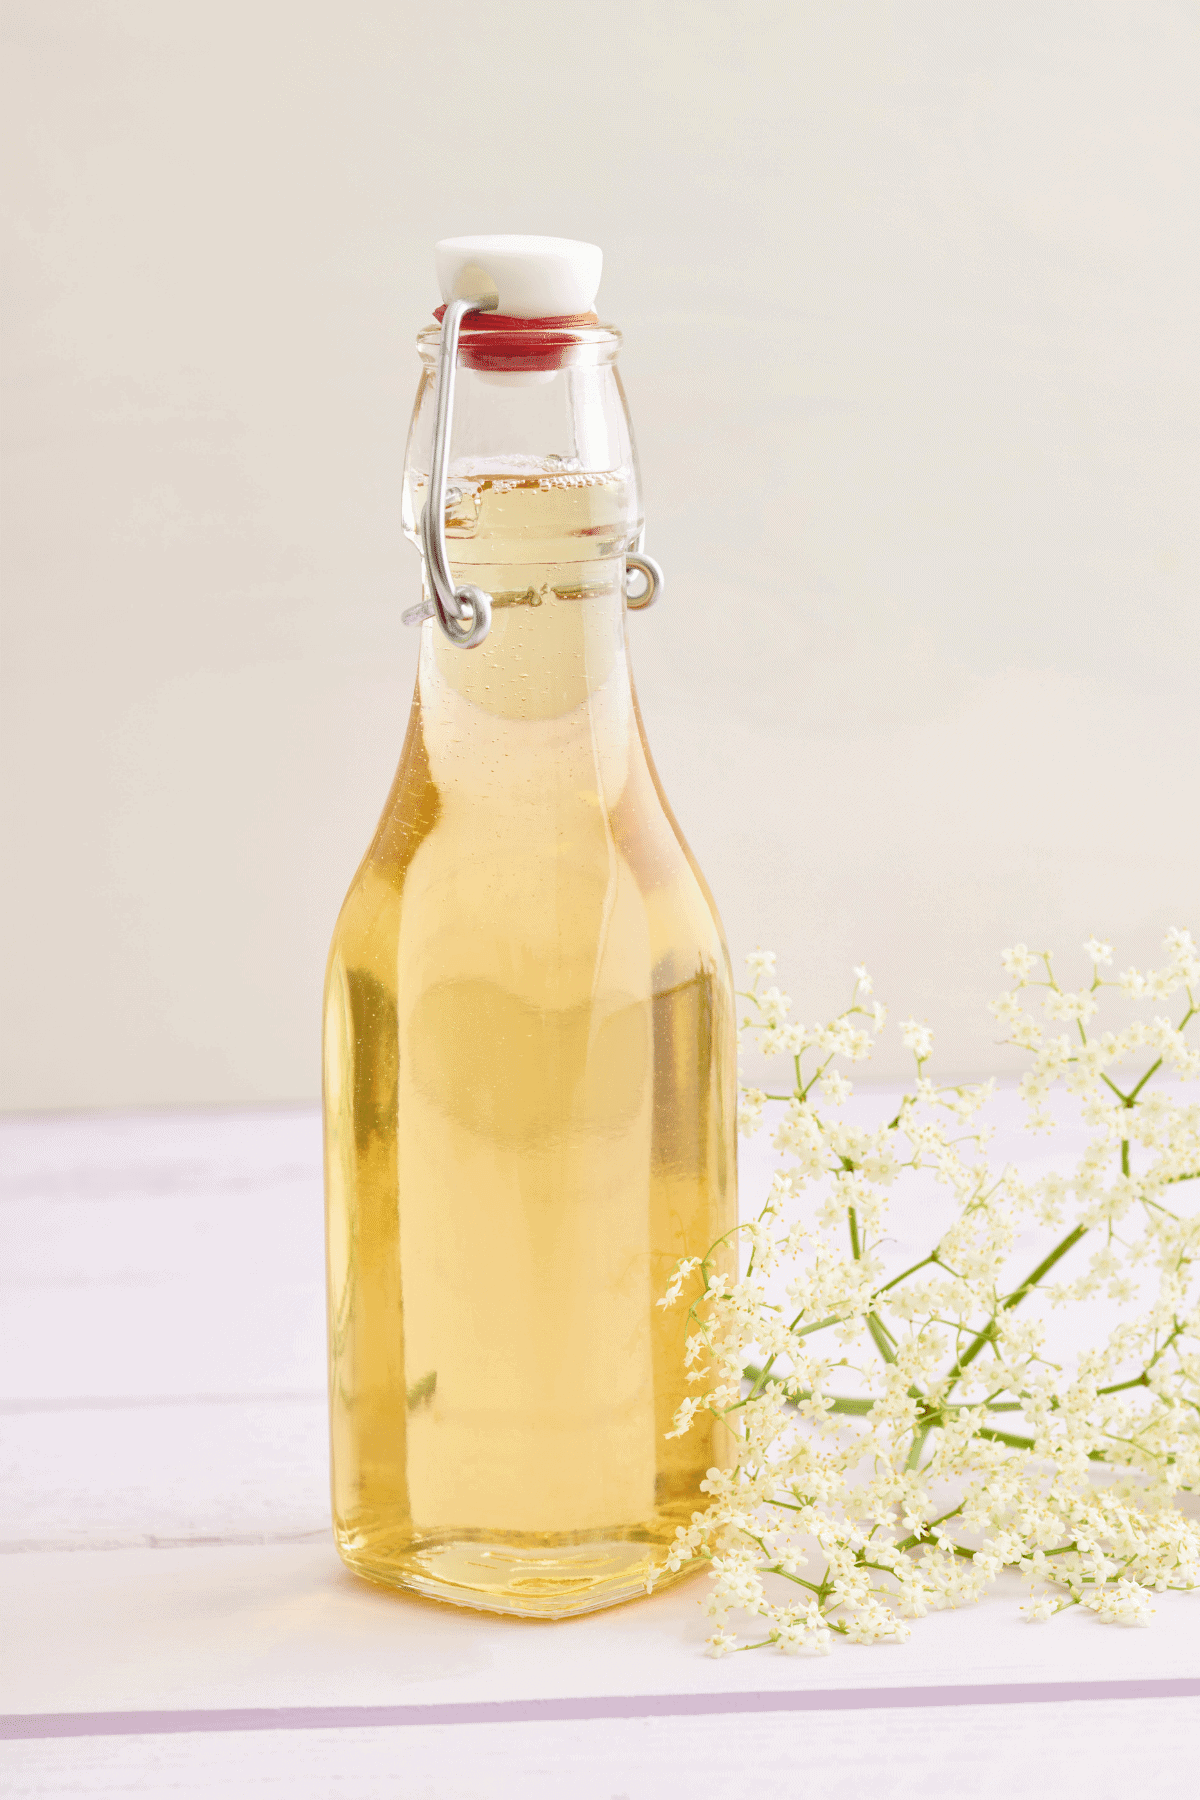 Homemade lemon simple syrup in a glass bottle sitting on the countertop